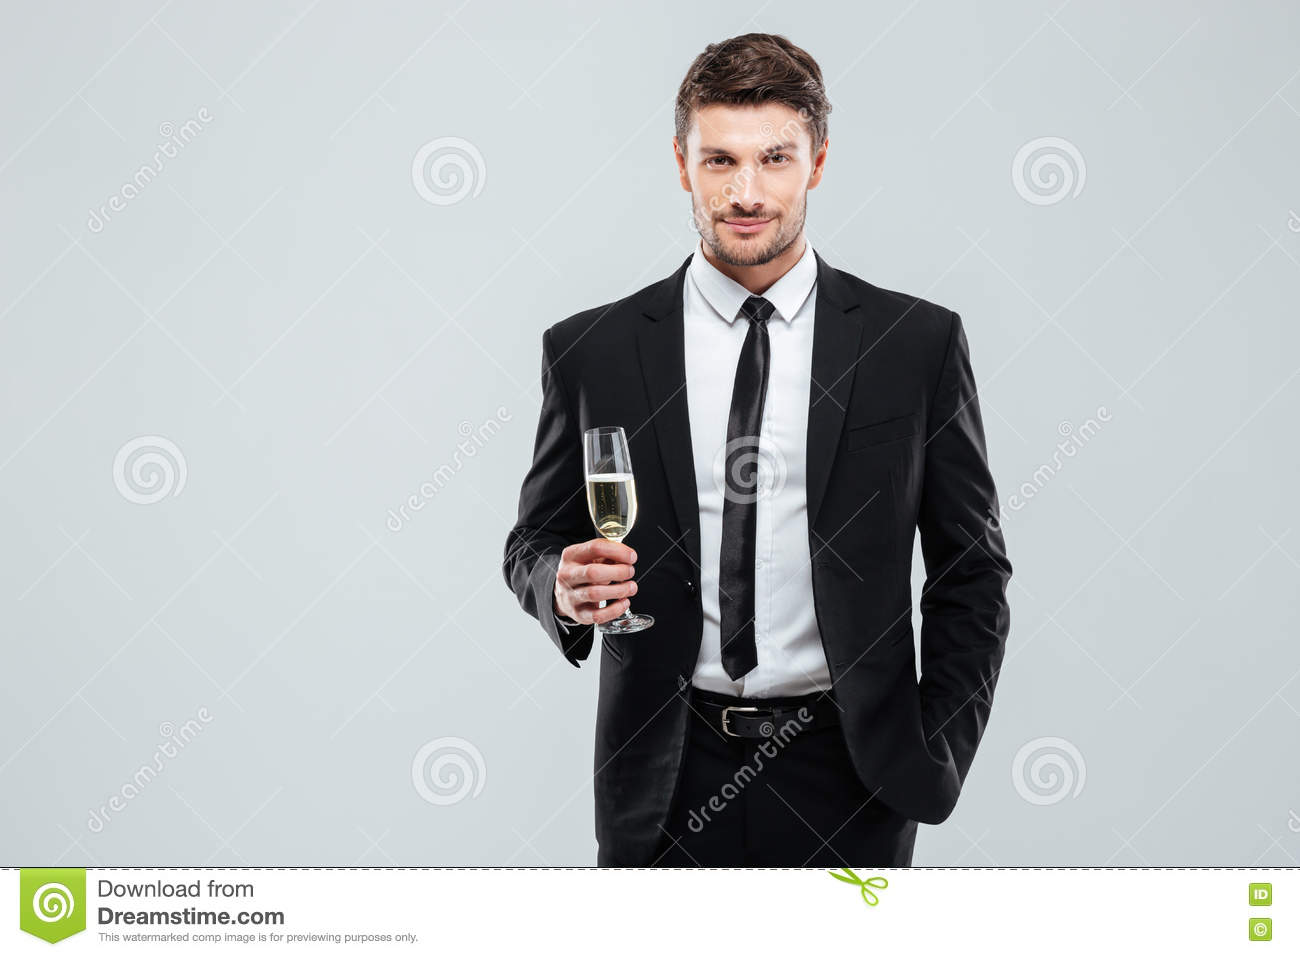 Confident man in suit and tie holding glass of champagne